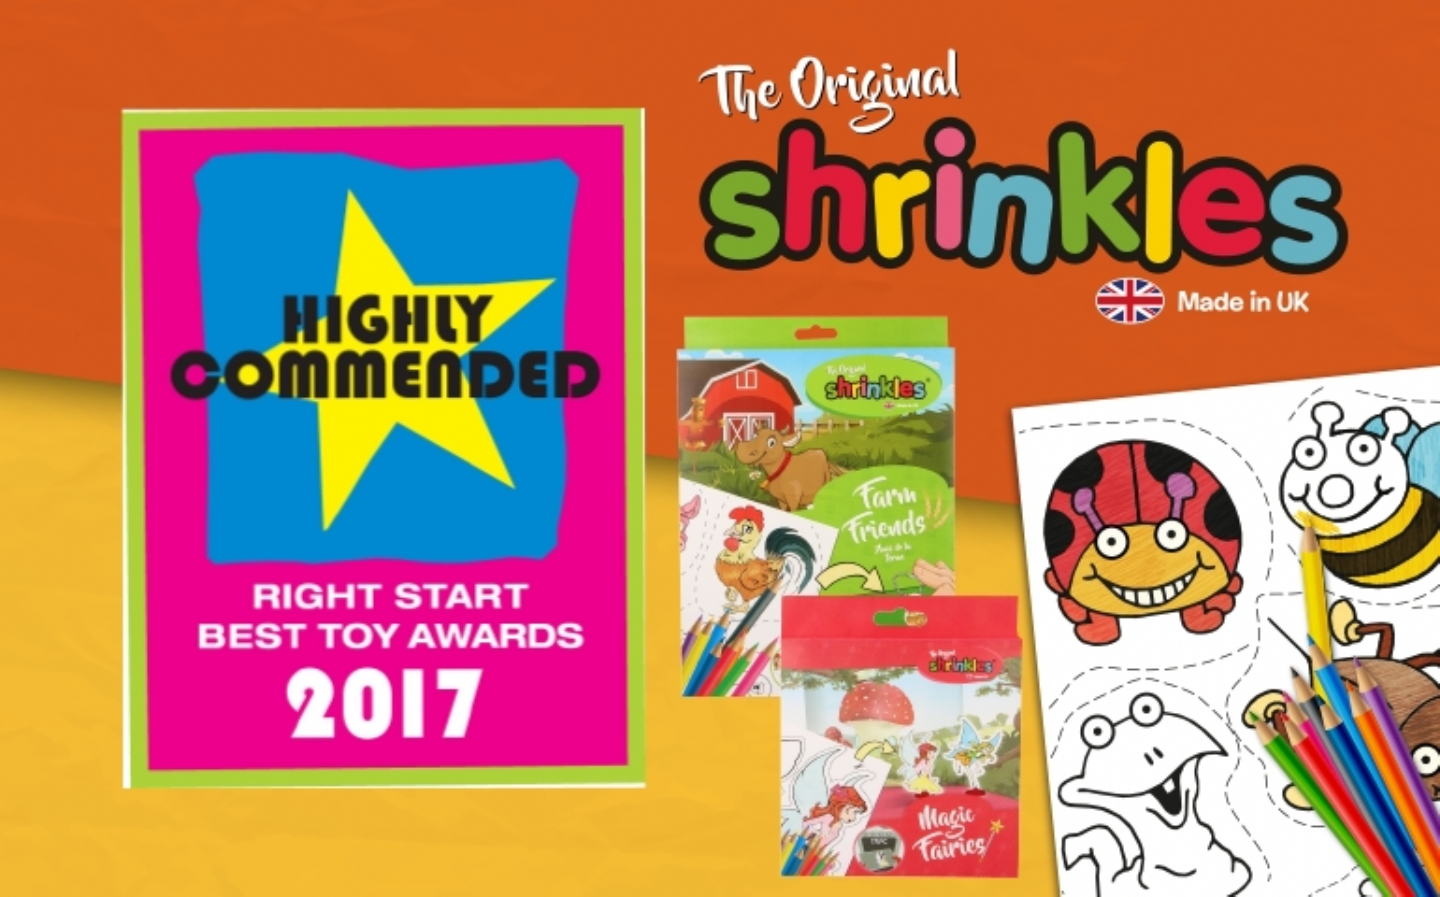 Highly Commended Award for Shrinkles in Right Start Toy Awards